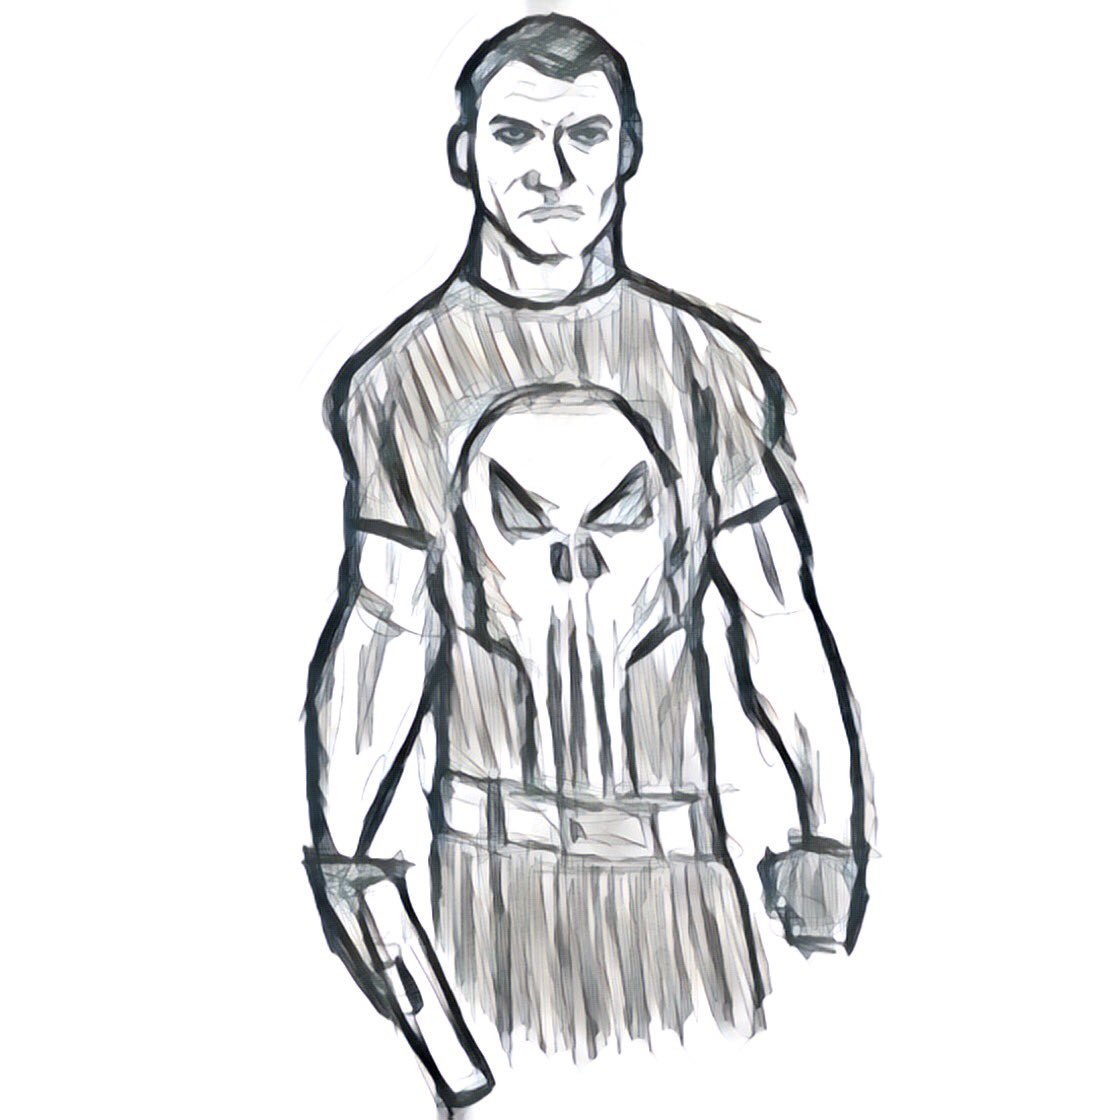 1120x1120 Dan Greenwald On Twitter Rough Punisher Sketch, Finished